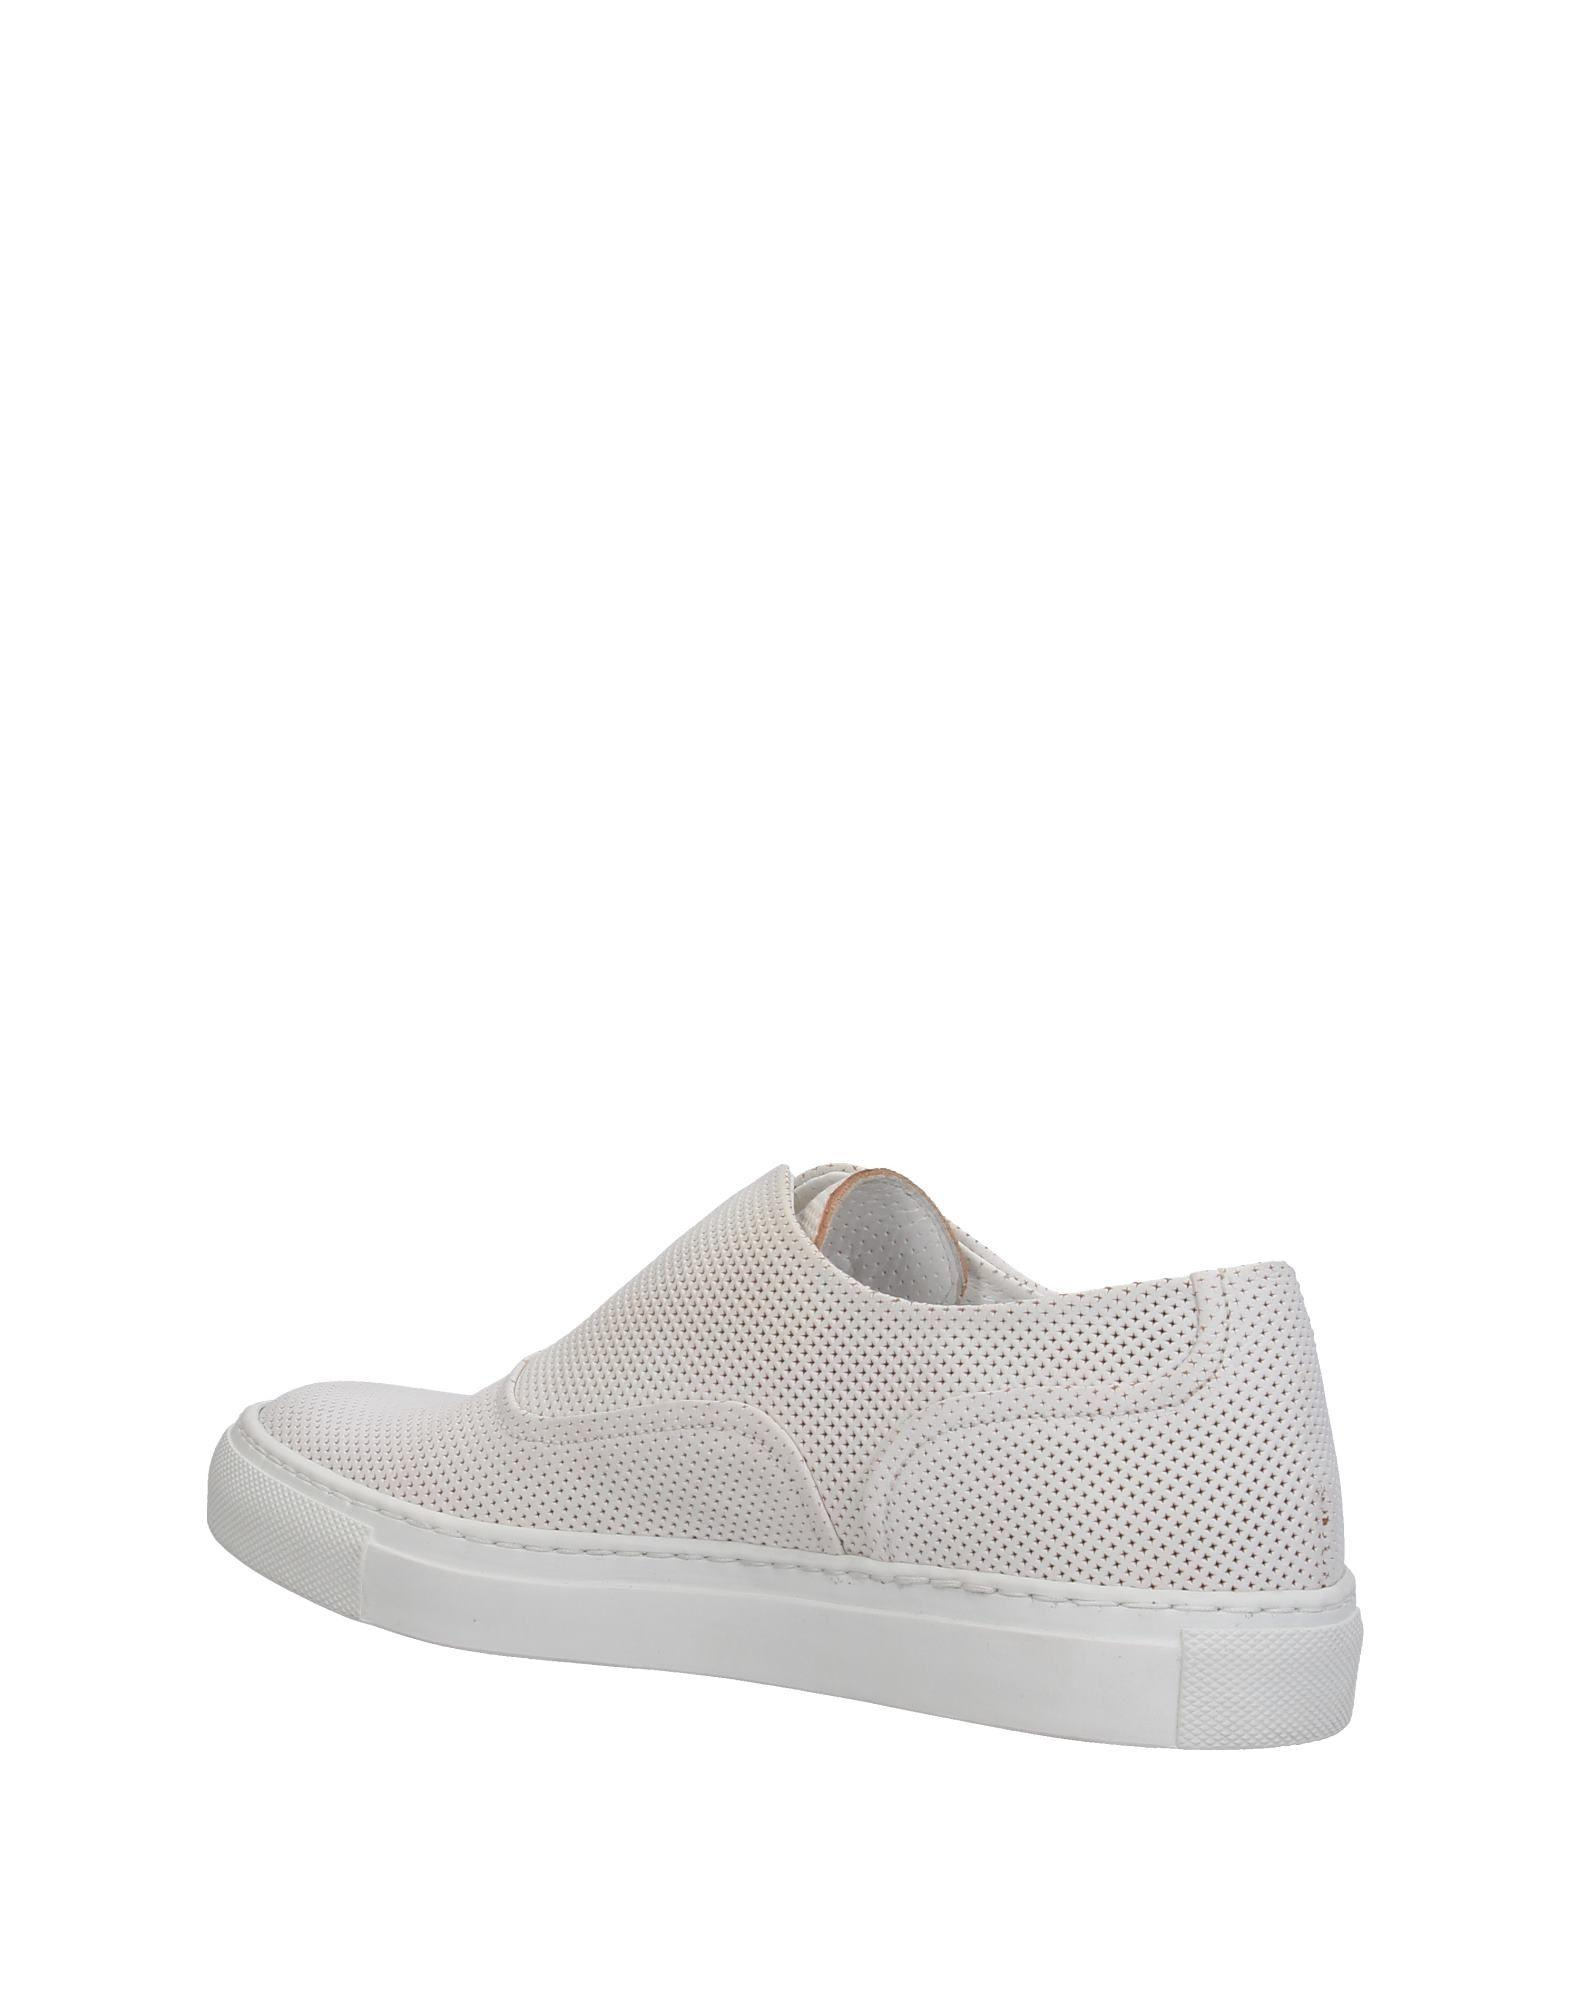 Sartore Leather Low-tops & Sneakers in White